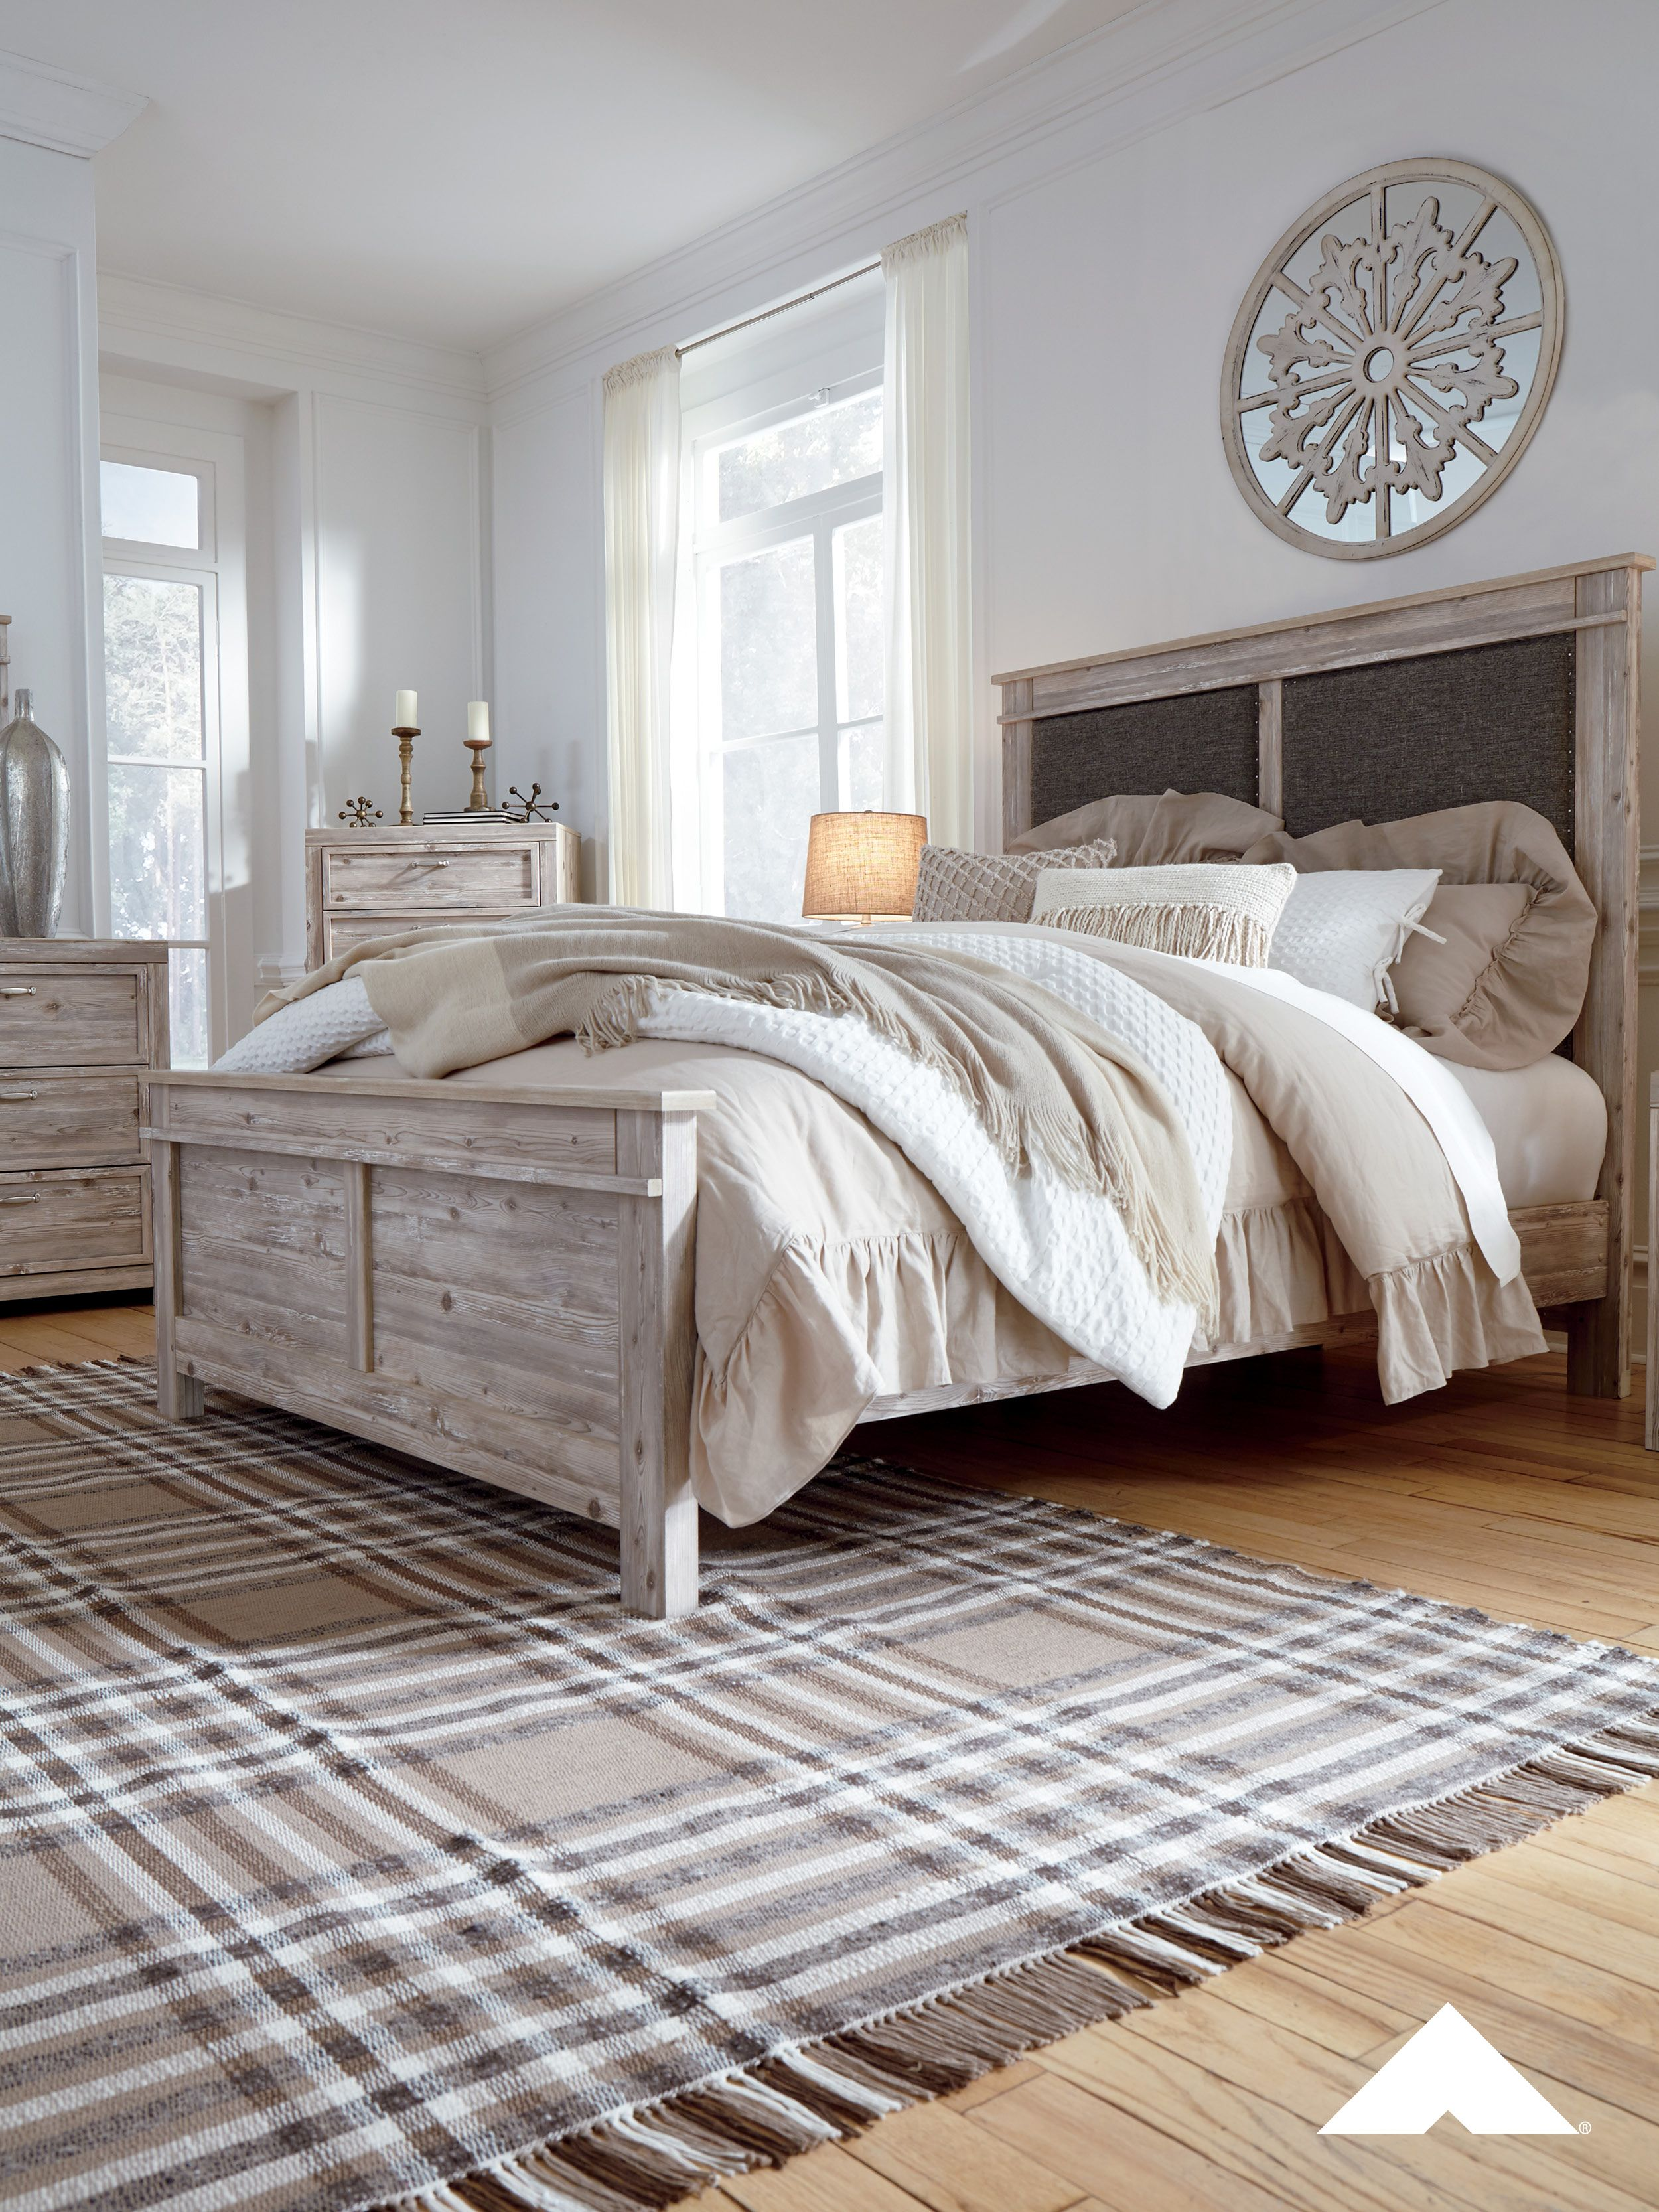 Willabry Bedroom Set By Ashley Furniture Worn Through Paint